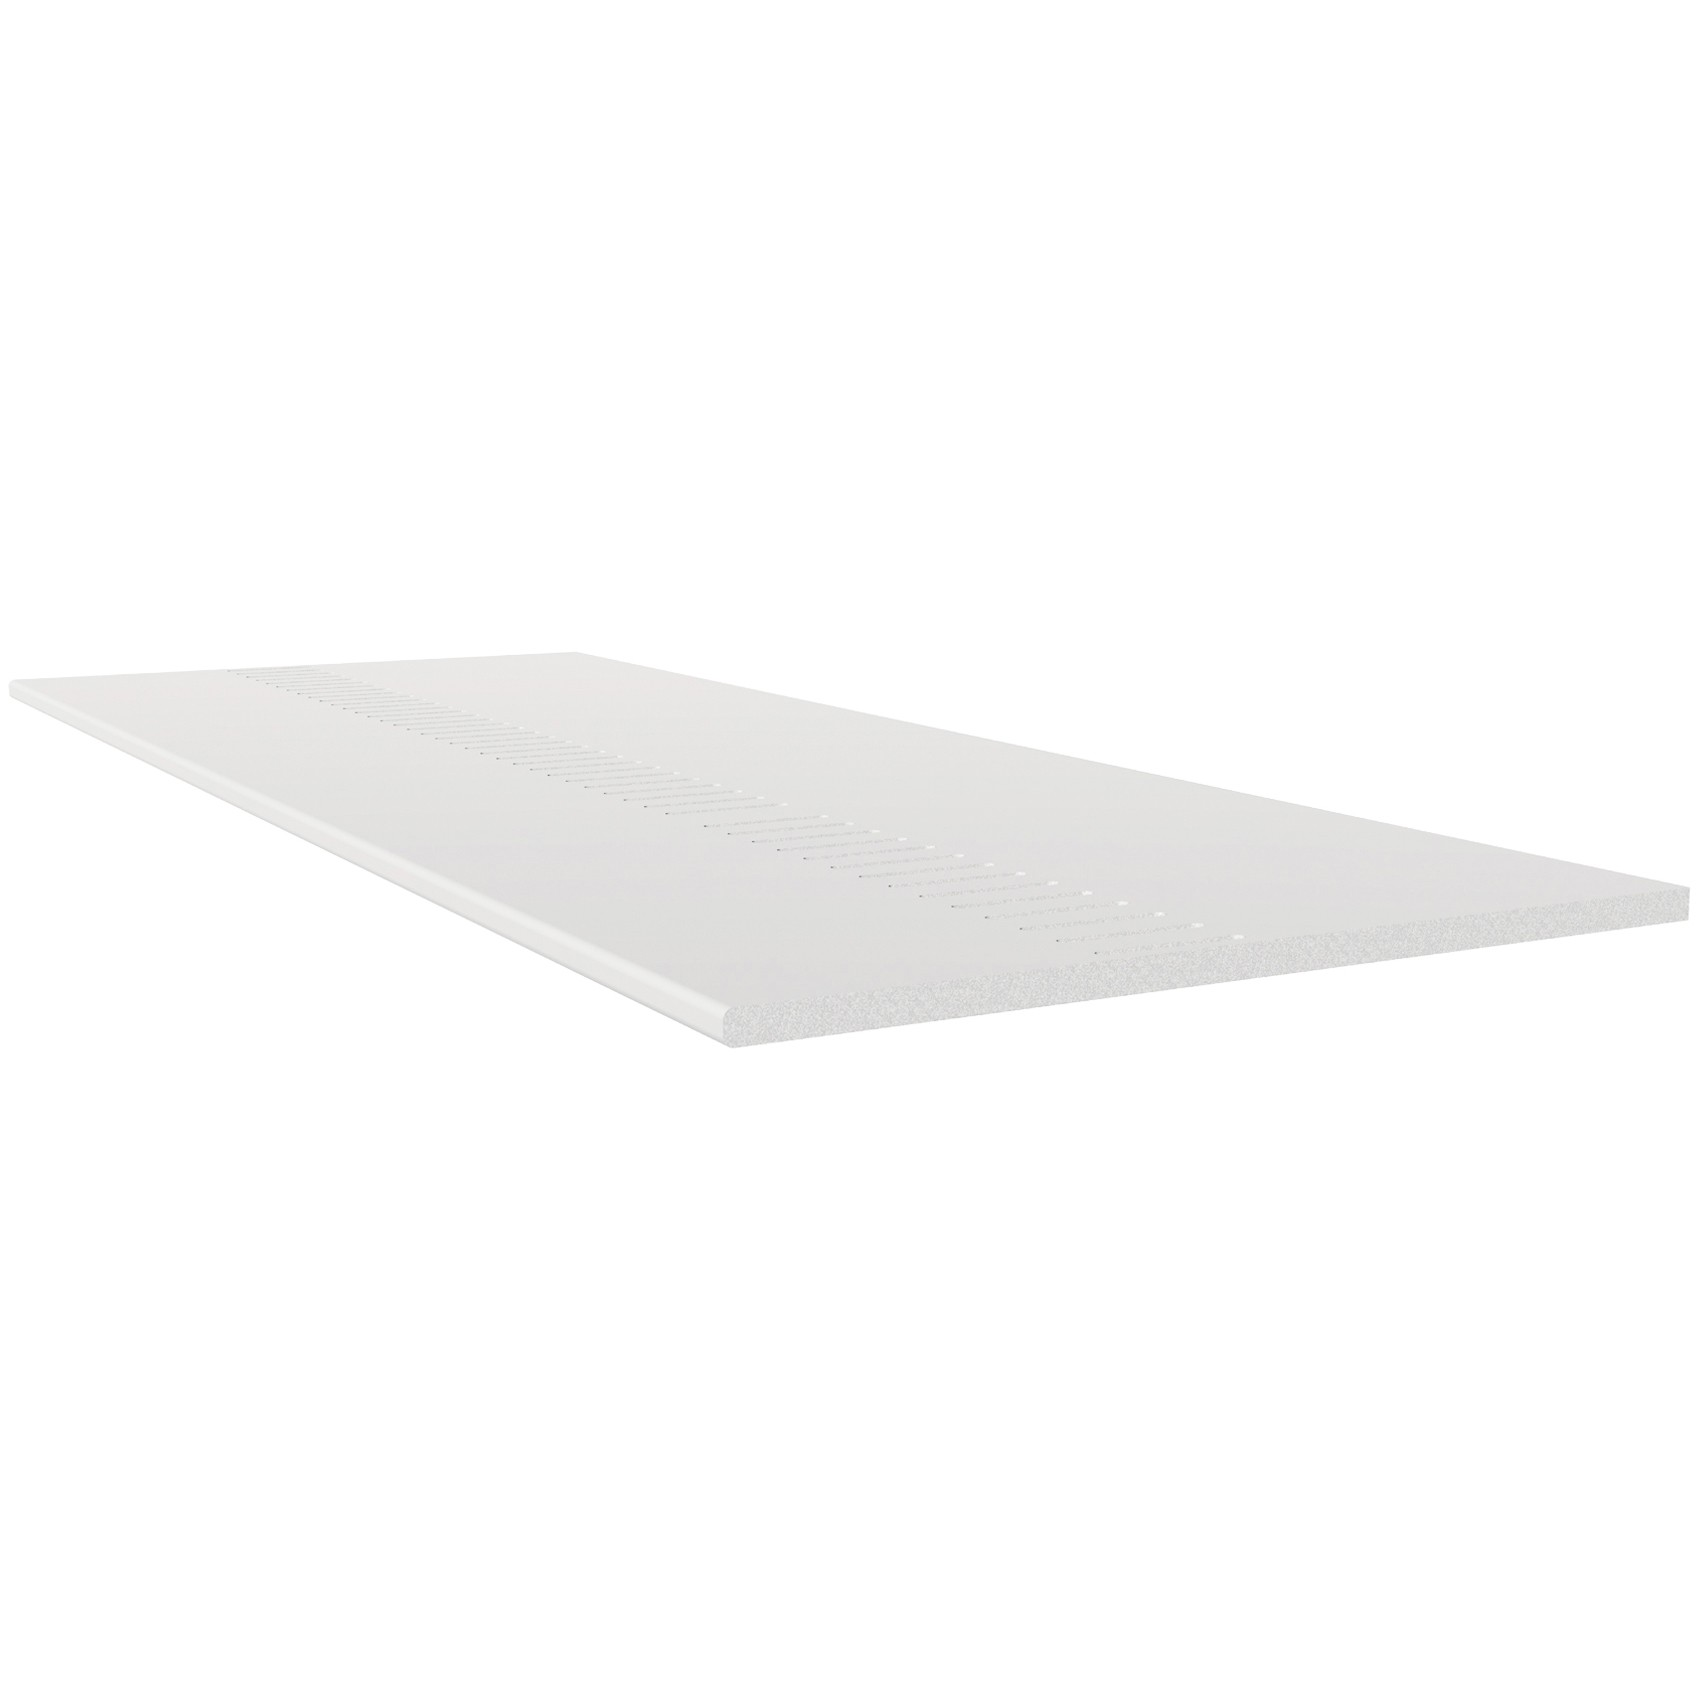 Freefoam Pre Vented 10mm Solid Soffit Board - White, 605mm, 5 metre